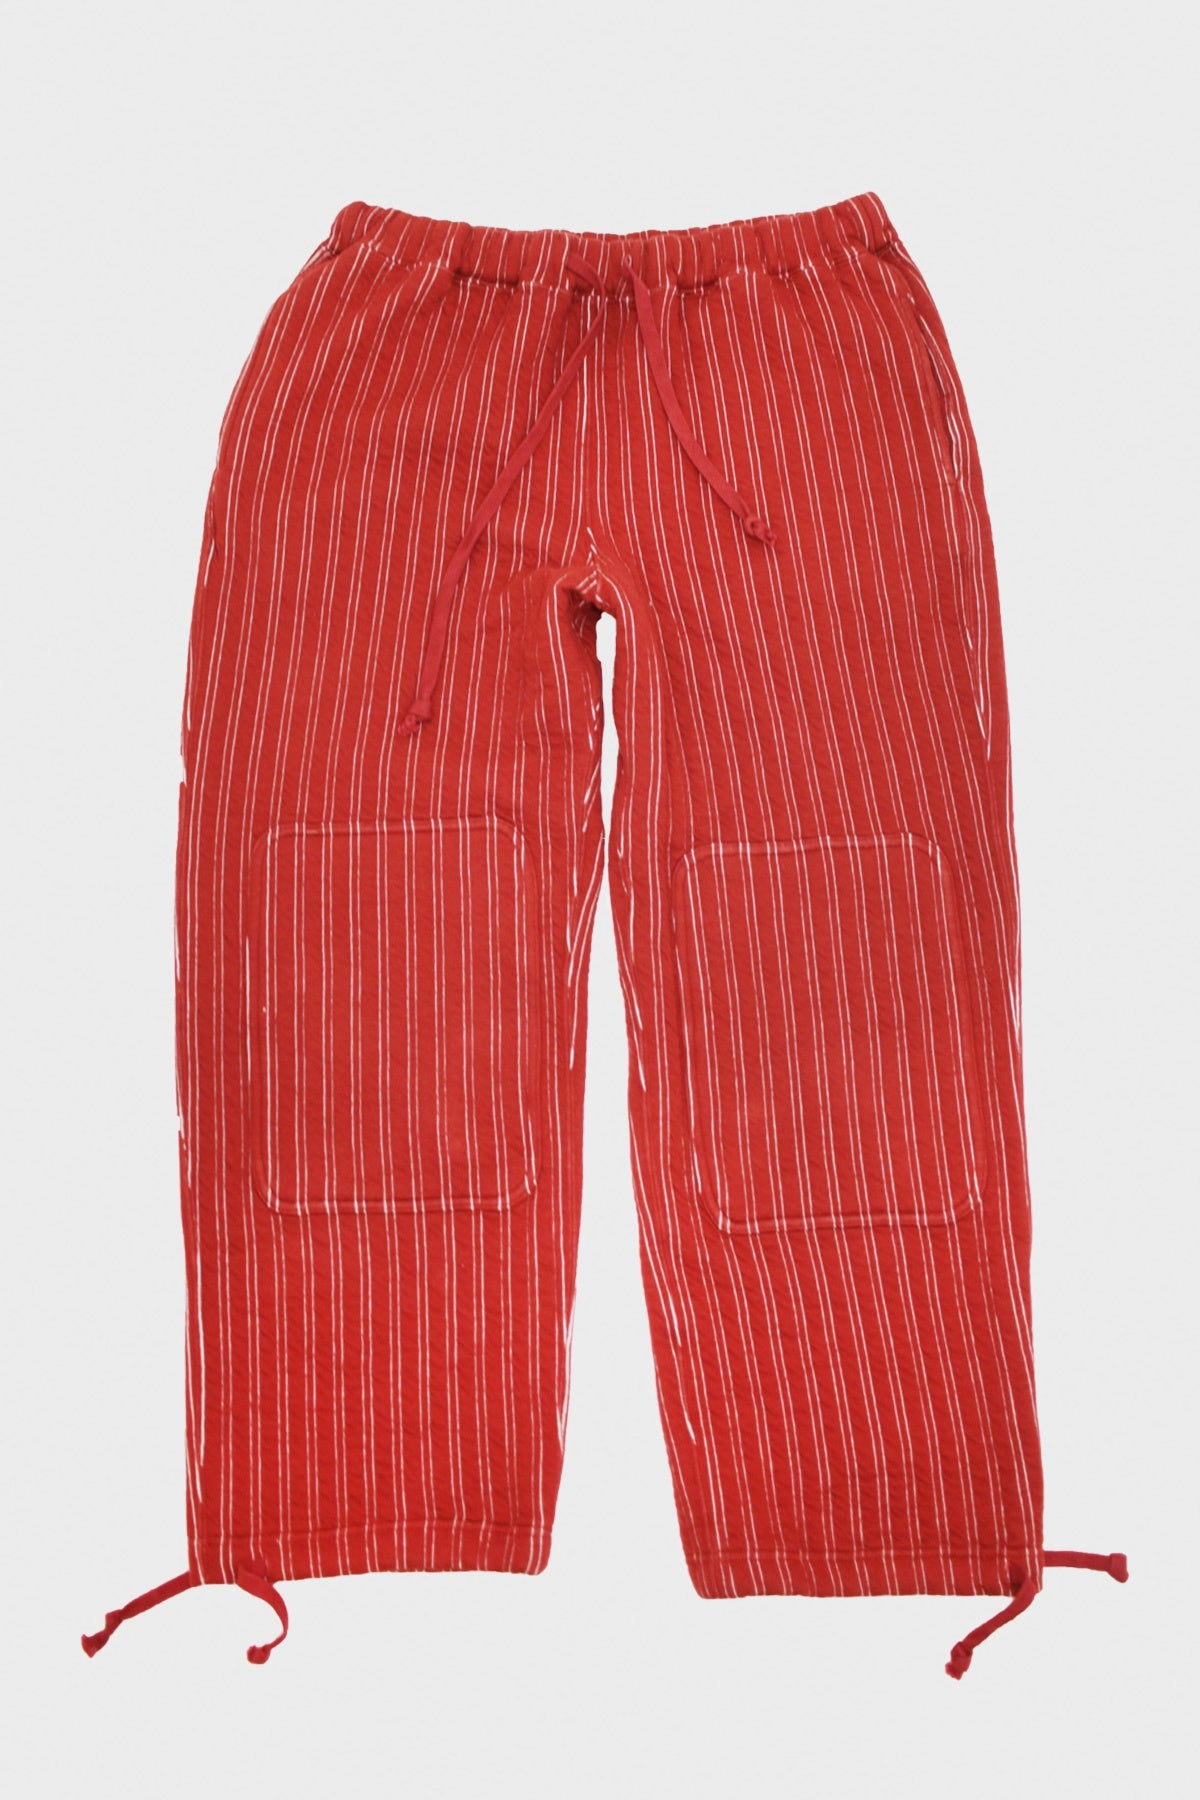 ts(s) - Knee Patch Training Pants - Red - Canoe Club